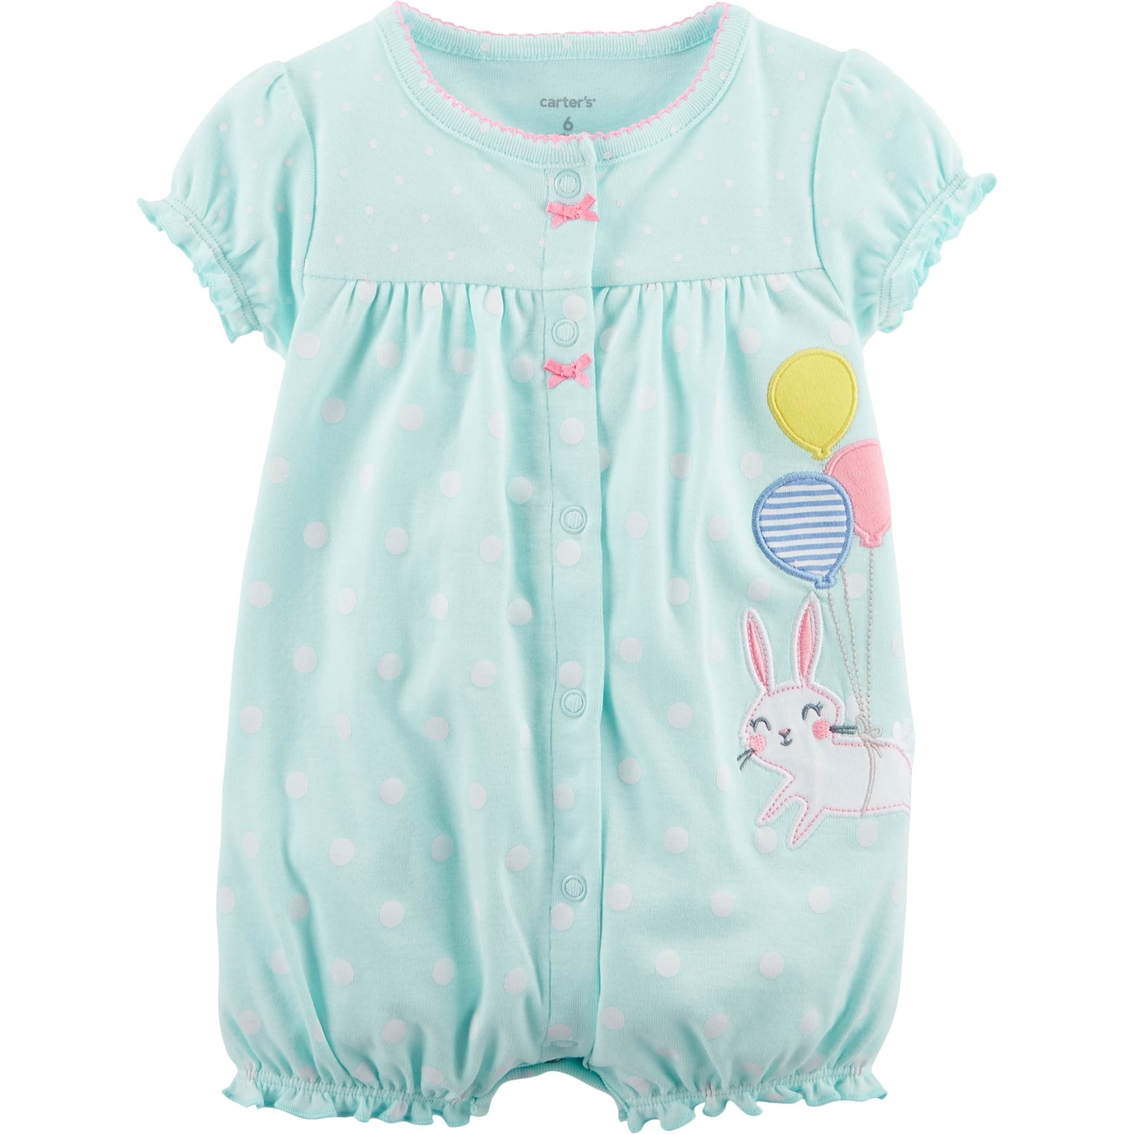 1a1455cd5 Carter s Infant Girls Bunny Snap Up Cotton Romper